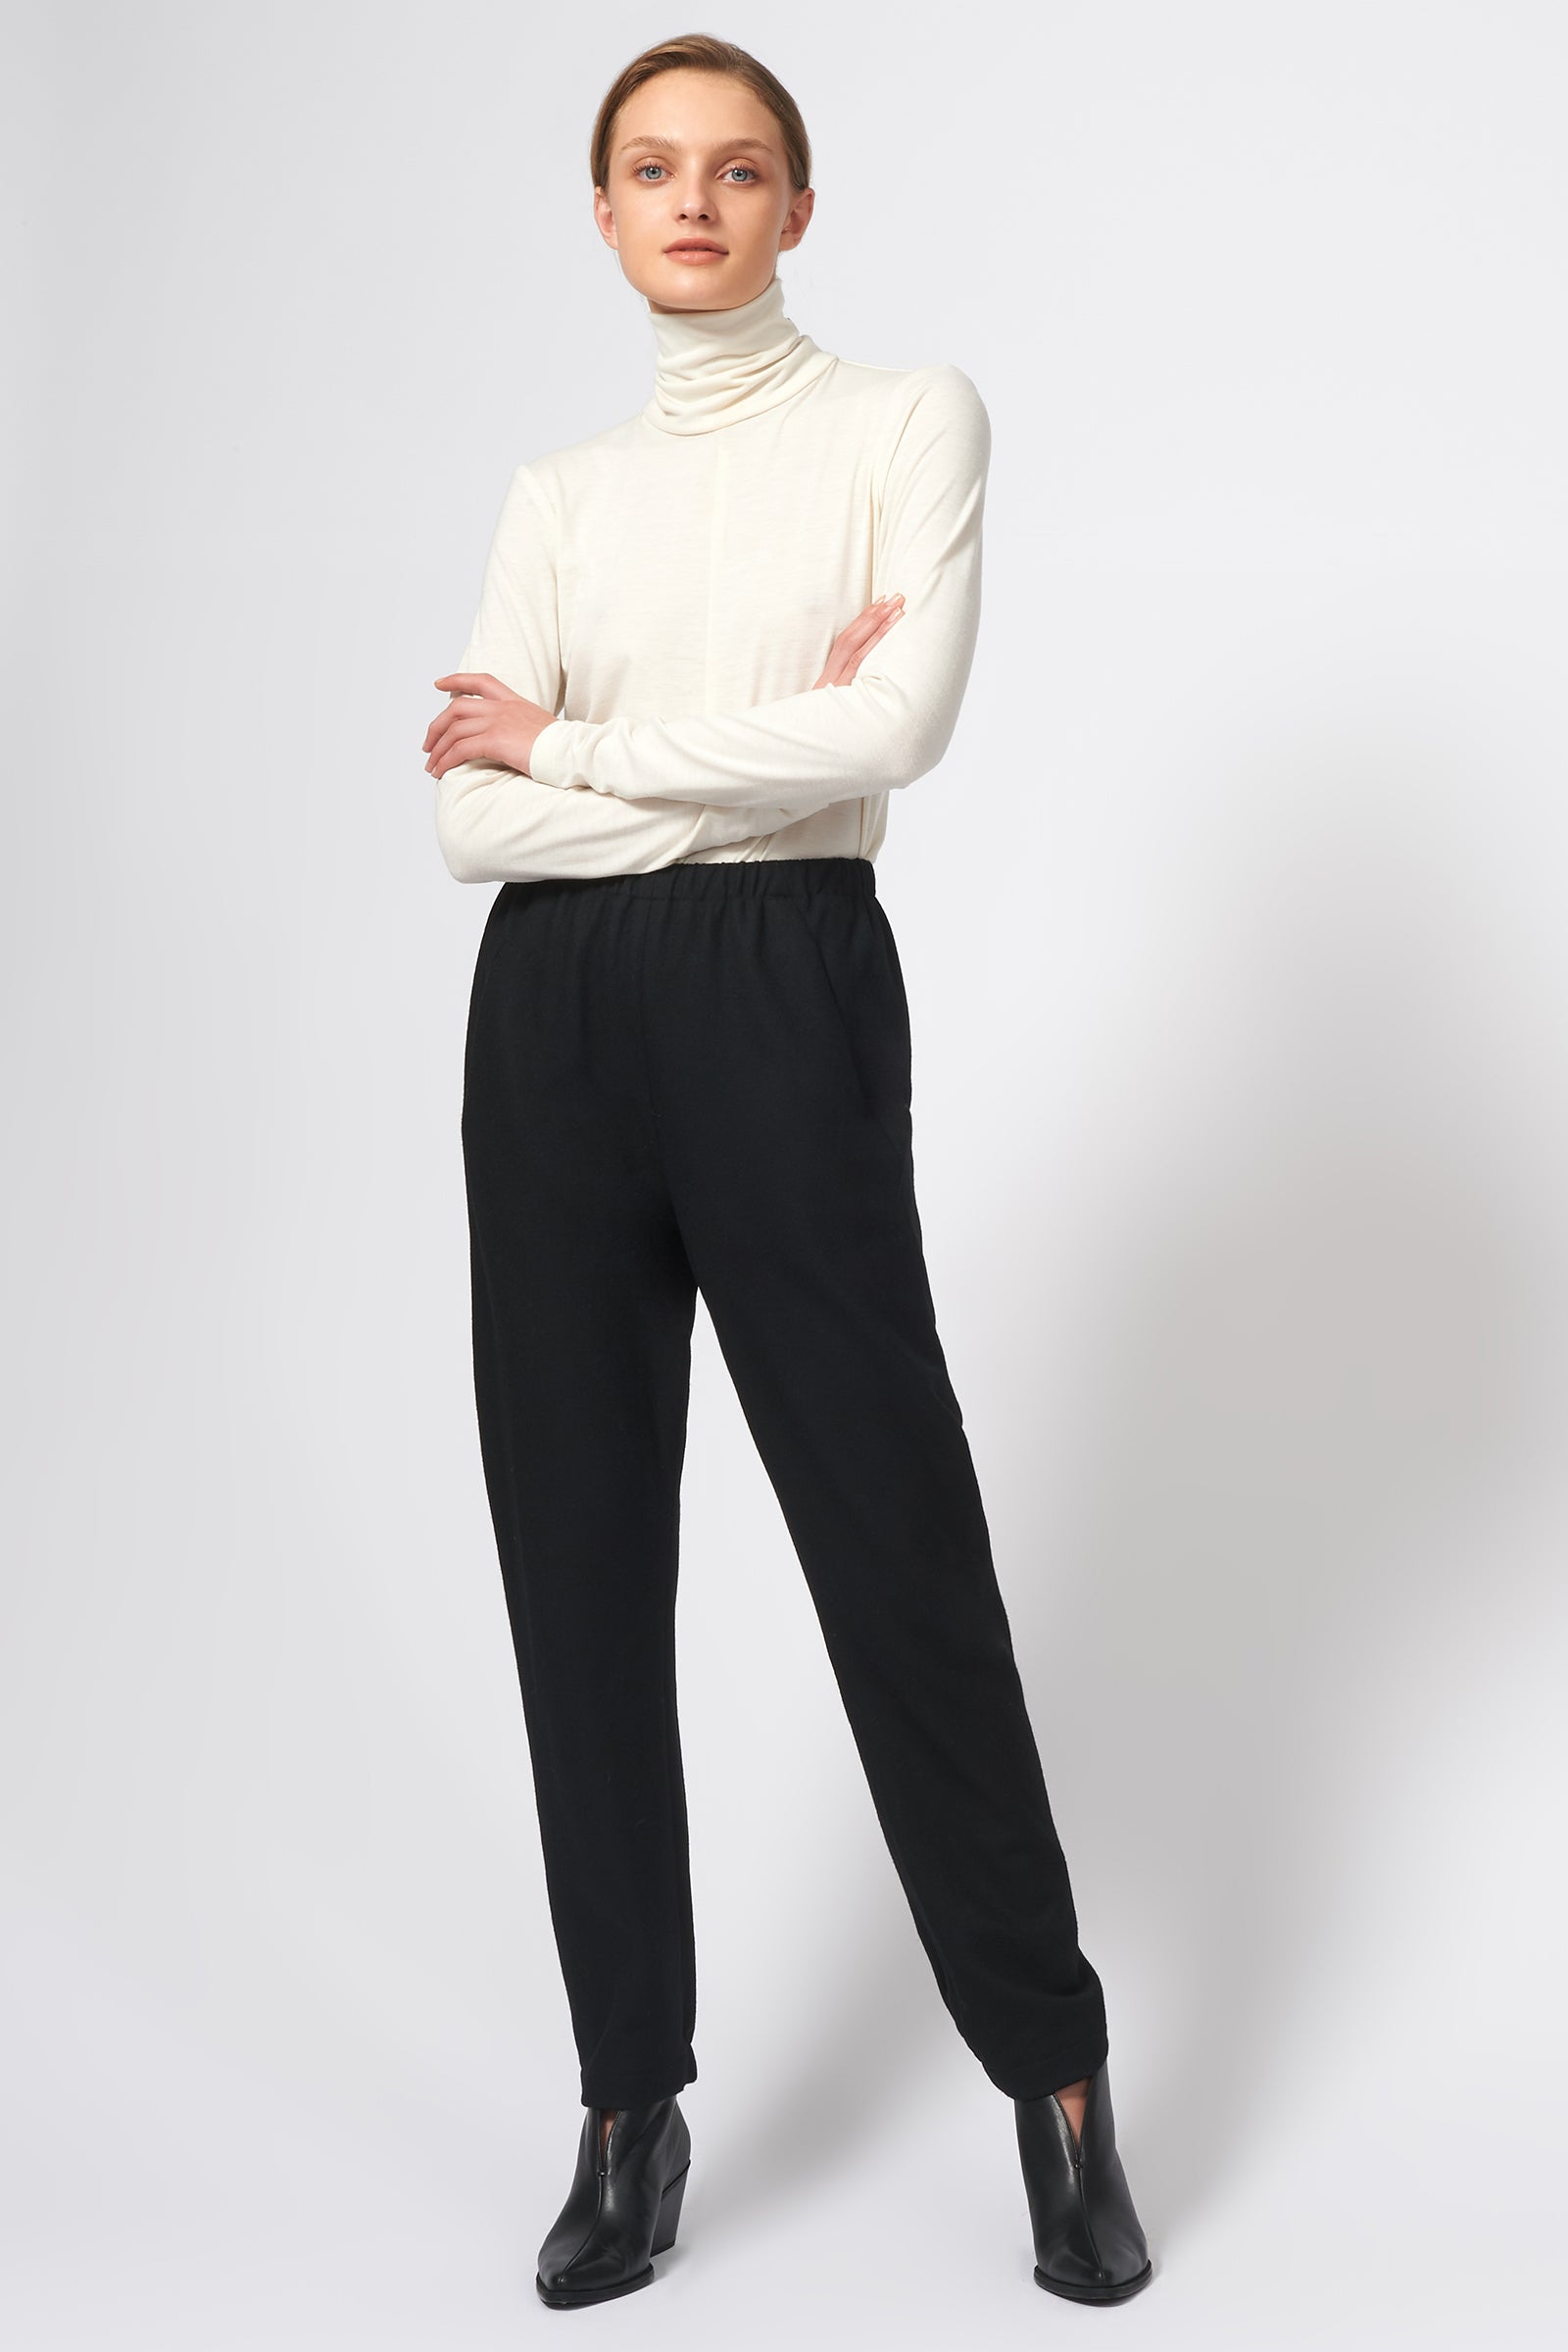 Kal Rieman Felted Jersey Angle Seam Jogger in Black on Model Full Front View